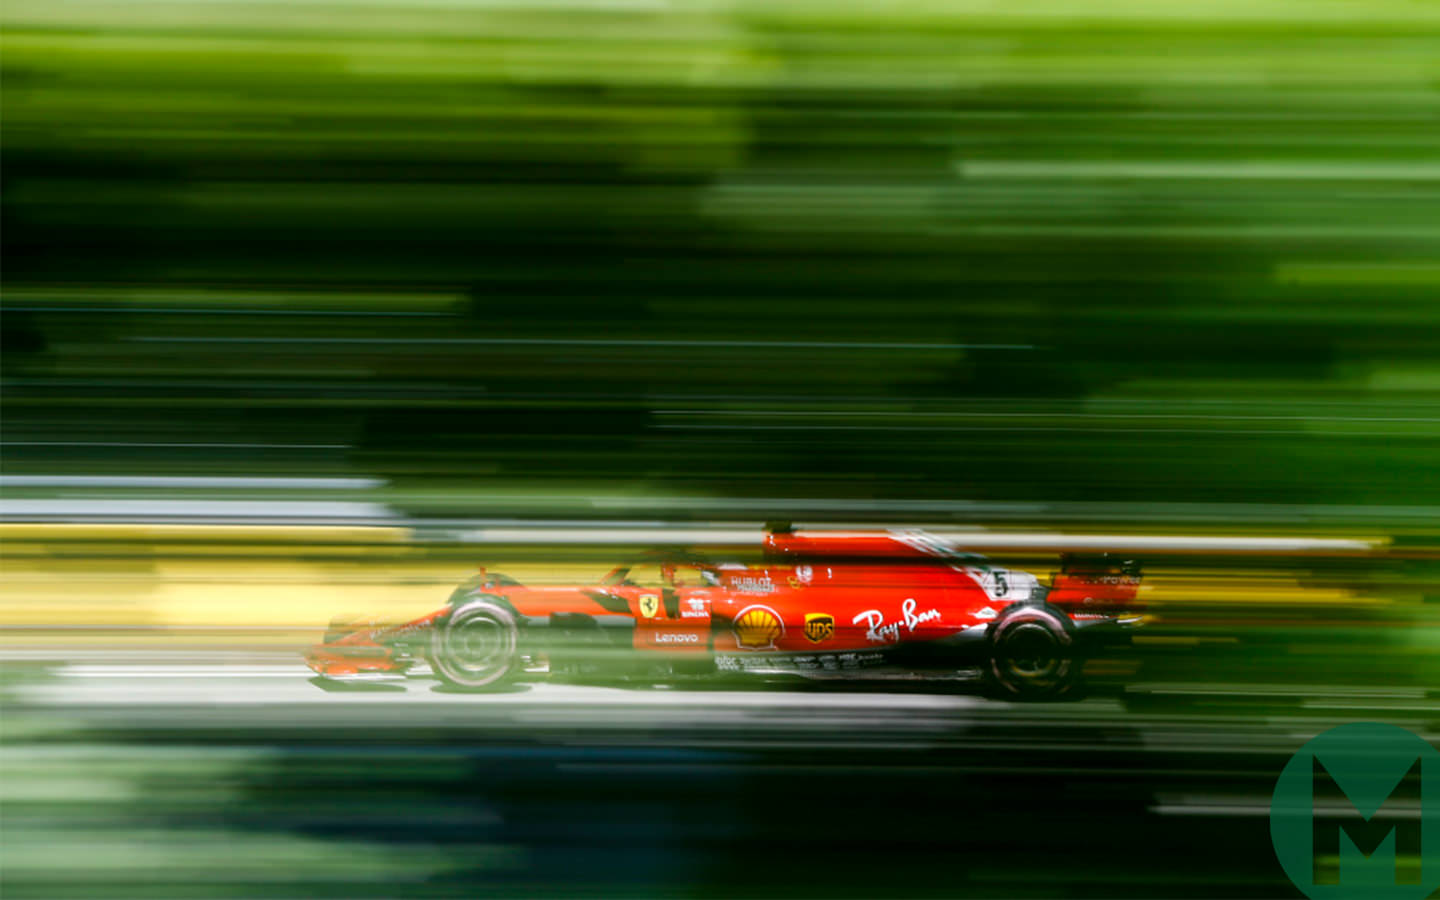 Sebastian Vettel on the way to pole for the 2018 Canadian Grand Prix